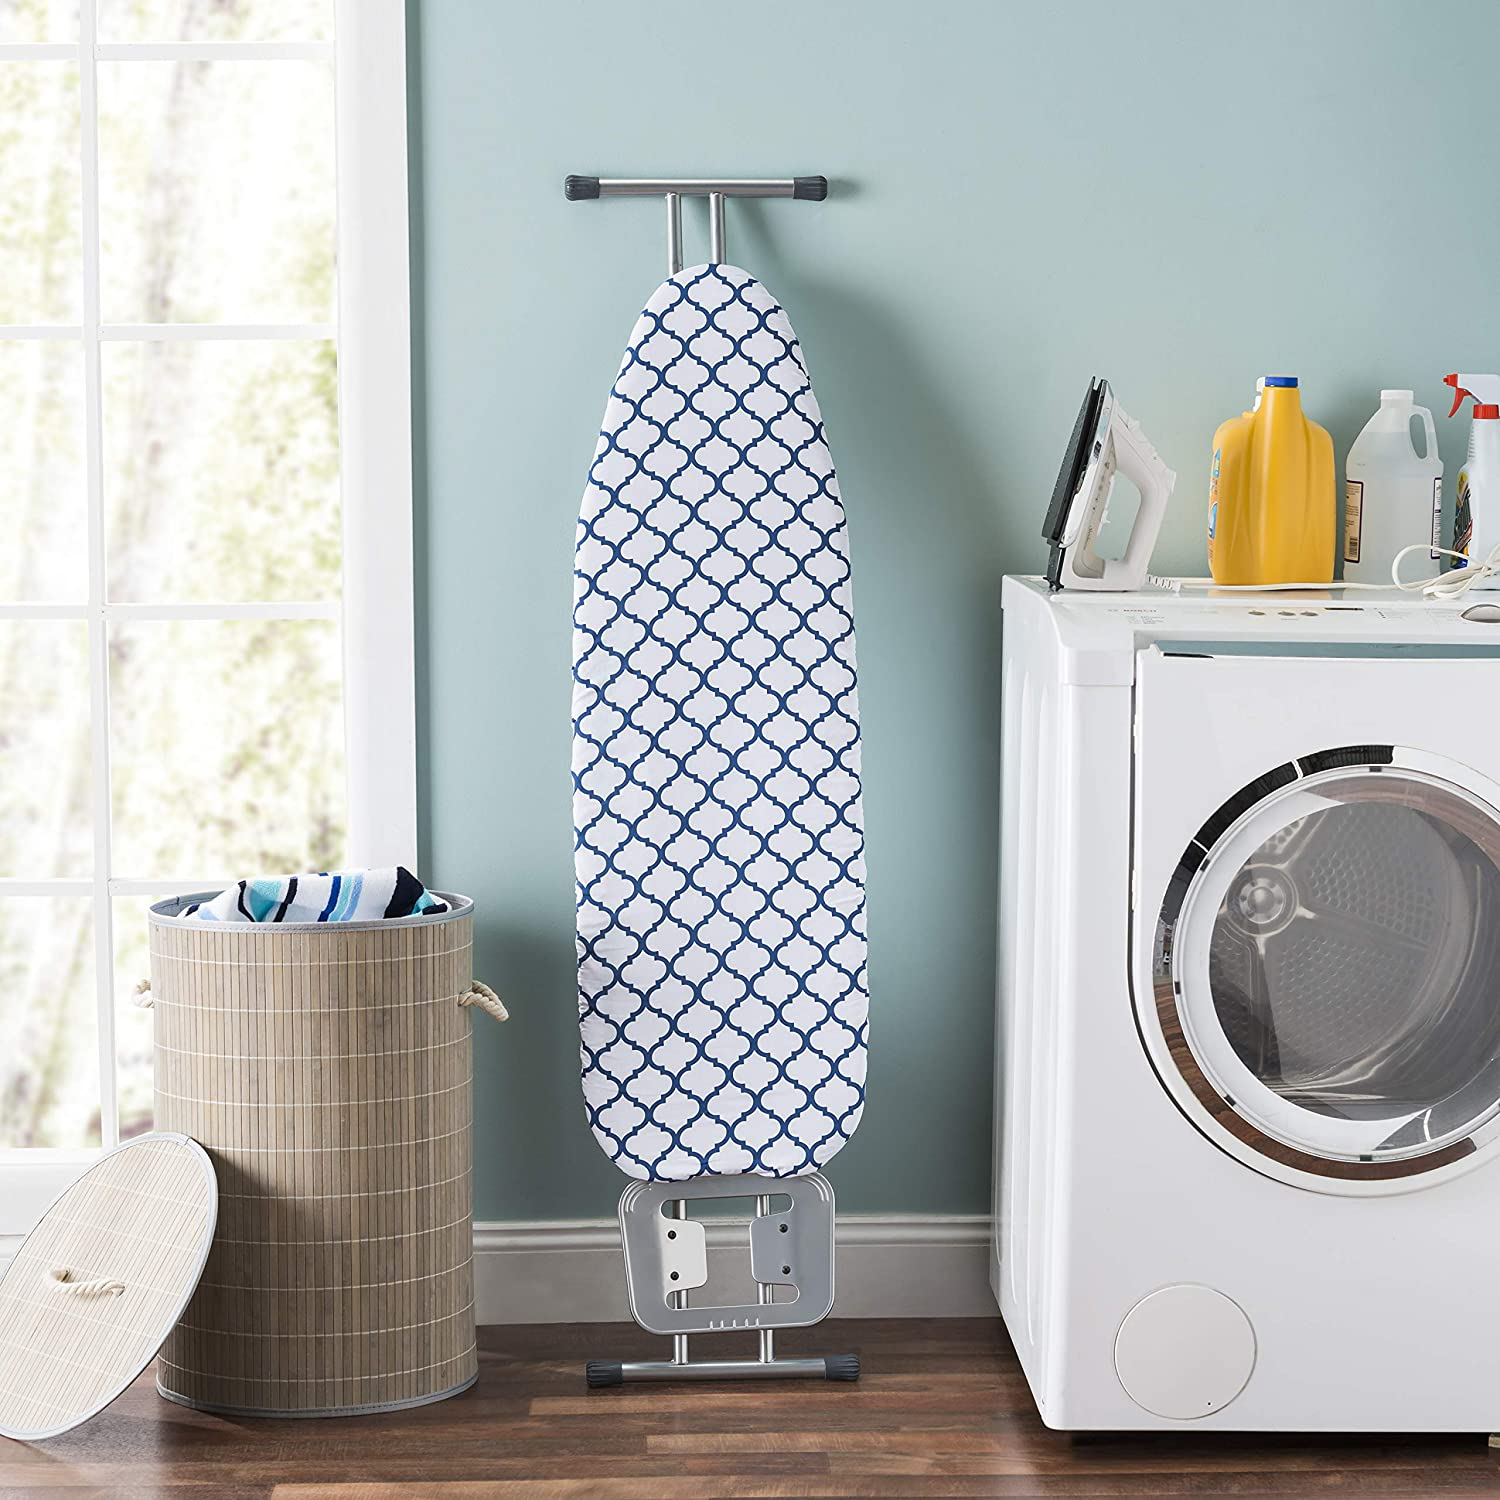 Isnt IT Ironic Thick Padding for Smooth-Wrinkle-Free Surface and Extra Stability Multi-Color Sunbeam Cotton 15 x 54 Ironing Board Cover with Elasticized Edges and Pad